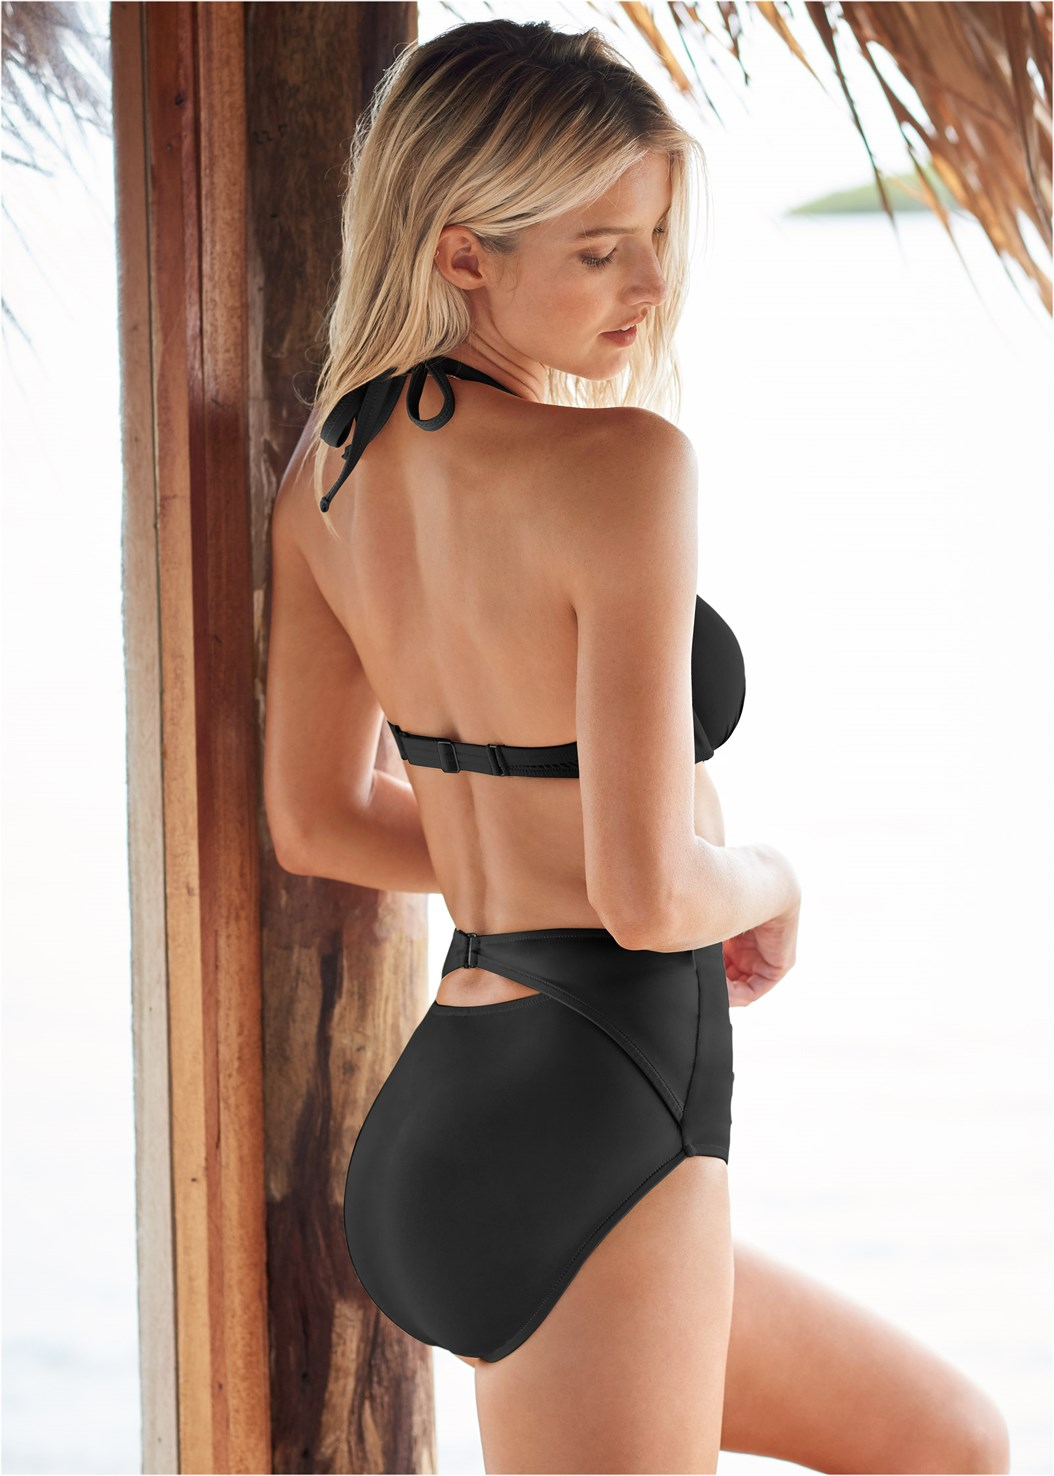 High Waist Keyhole Bottom,Venus Enhancer Halter Top,Lovely Lift Wrap Bikini Top,Underwire Ring Top,Tie Front Jumper Cover-Up